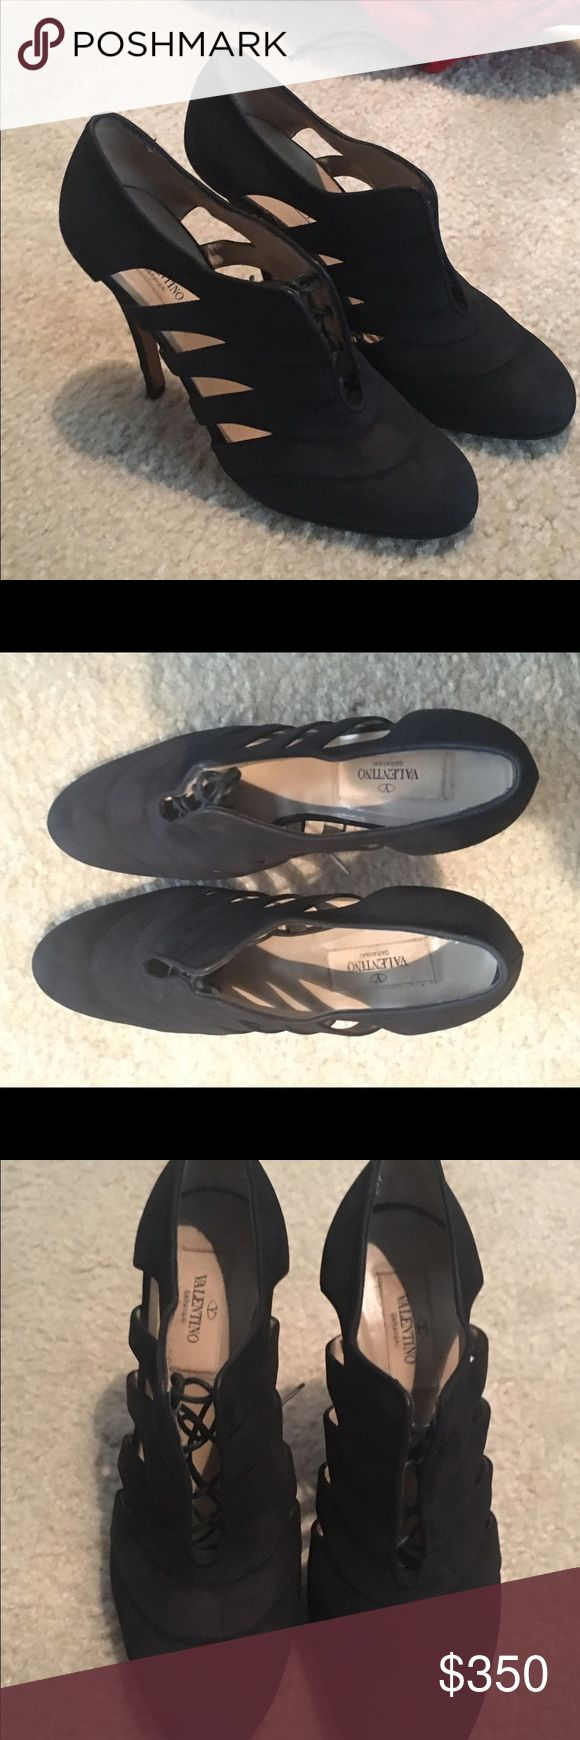 SALE! 😍 Valentino Lace Up Black Pumps The most amazing black heels from Valentino. Authentic. Size 6.5, worn once but worn outside so scuffed on bottom (but perfect condition). Lace up heeled sandals/pumps. Comes with dust bags. I wouldn't sell except that I have literally no chance to wear them in medical school 😅 Valentino Shoes Heels